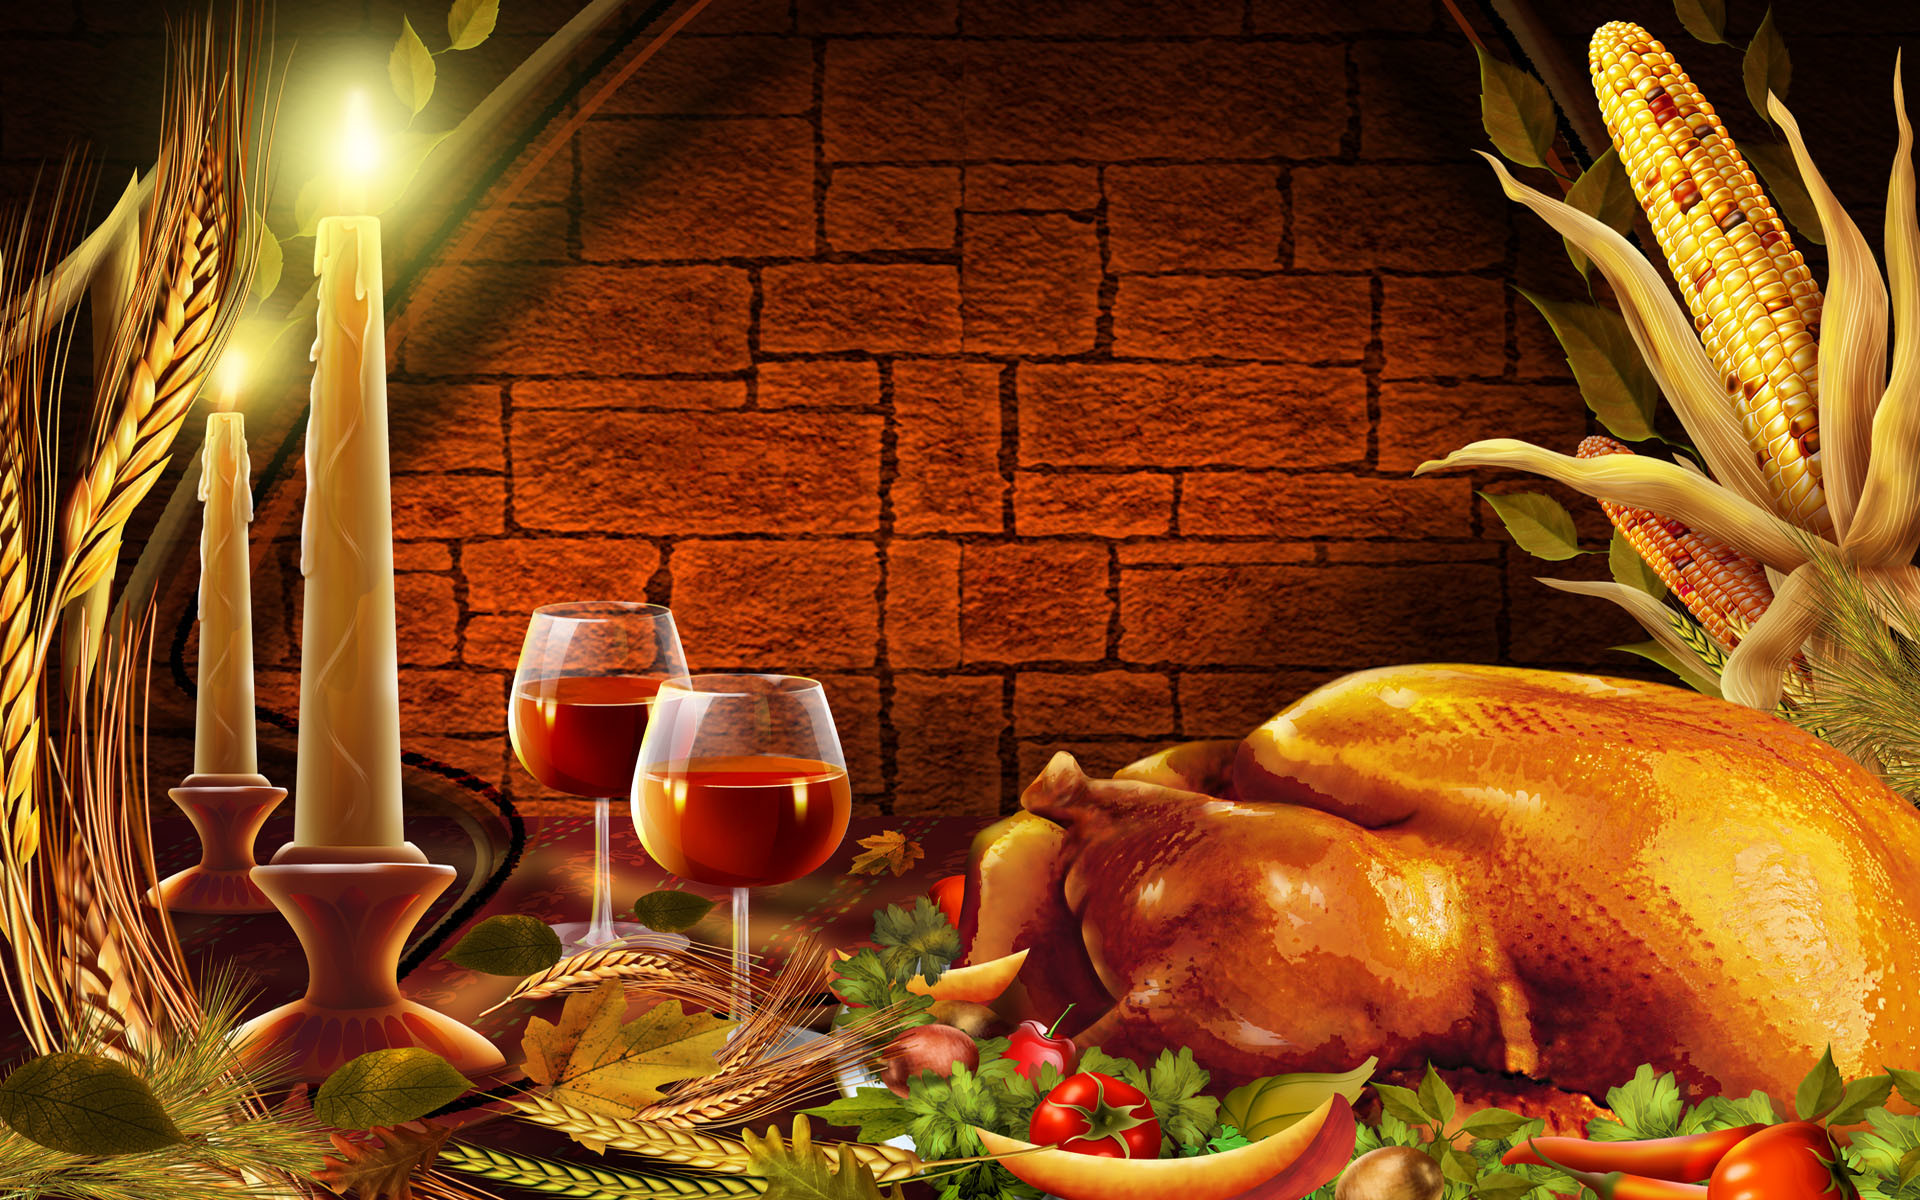 1920x1200 BLACK POEPLE THANKGIVING | Thanksgiving Dinner, Dinner, holidays,  occasions, people, Thanksgiving